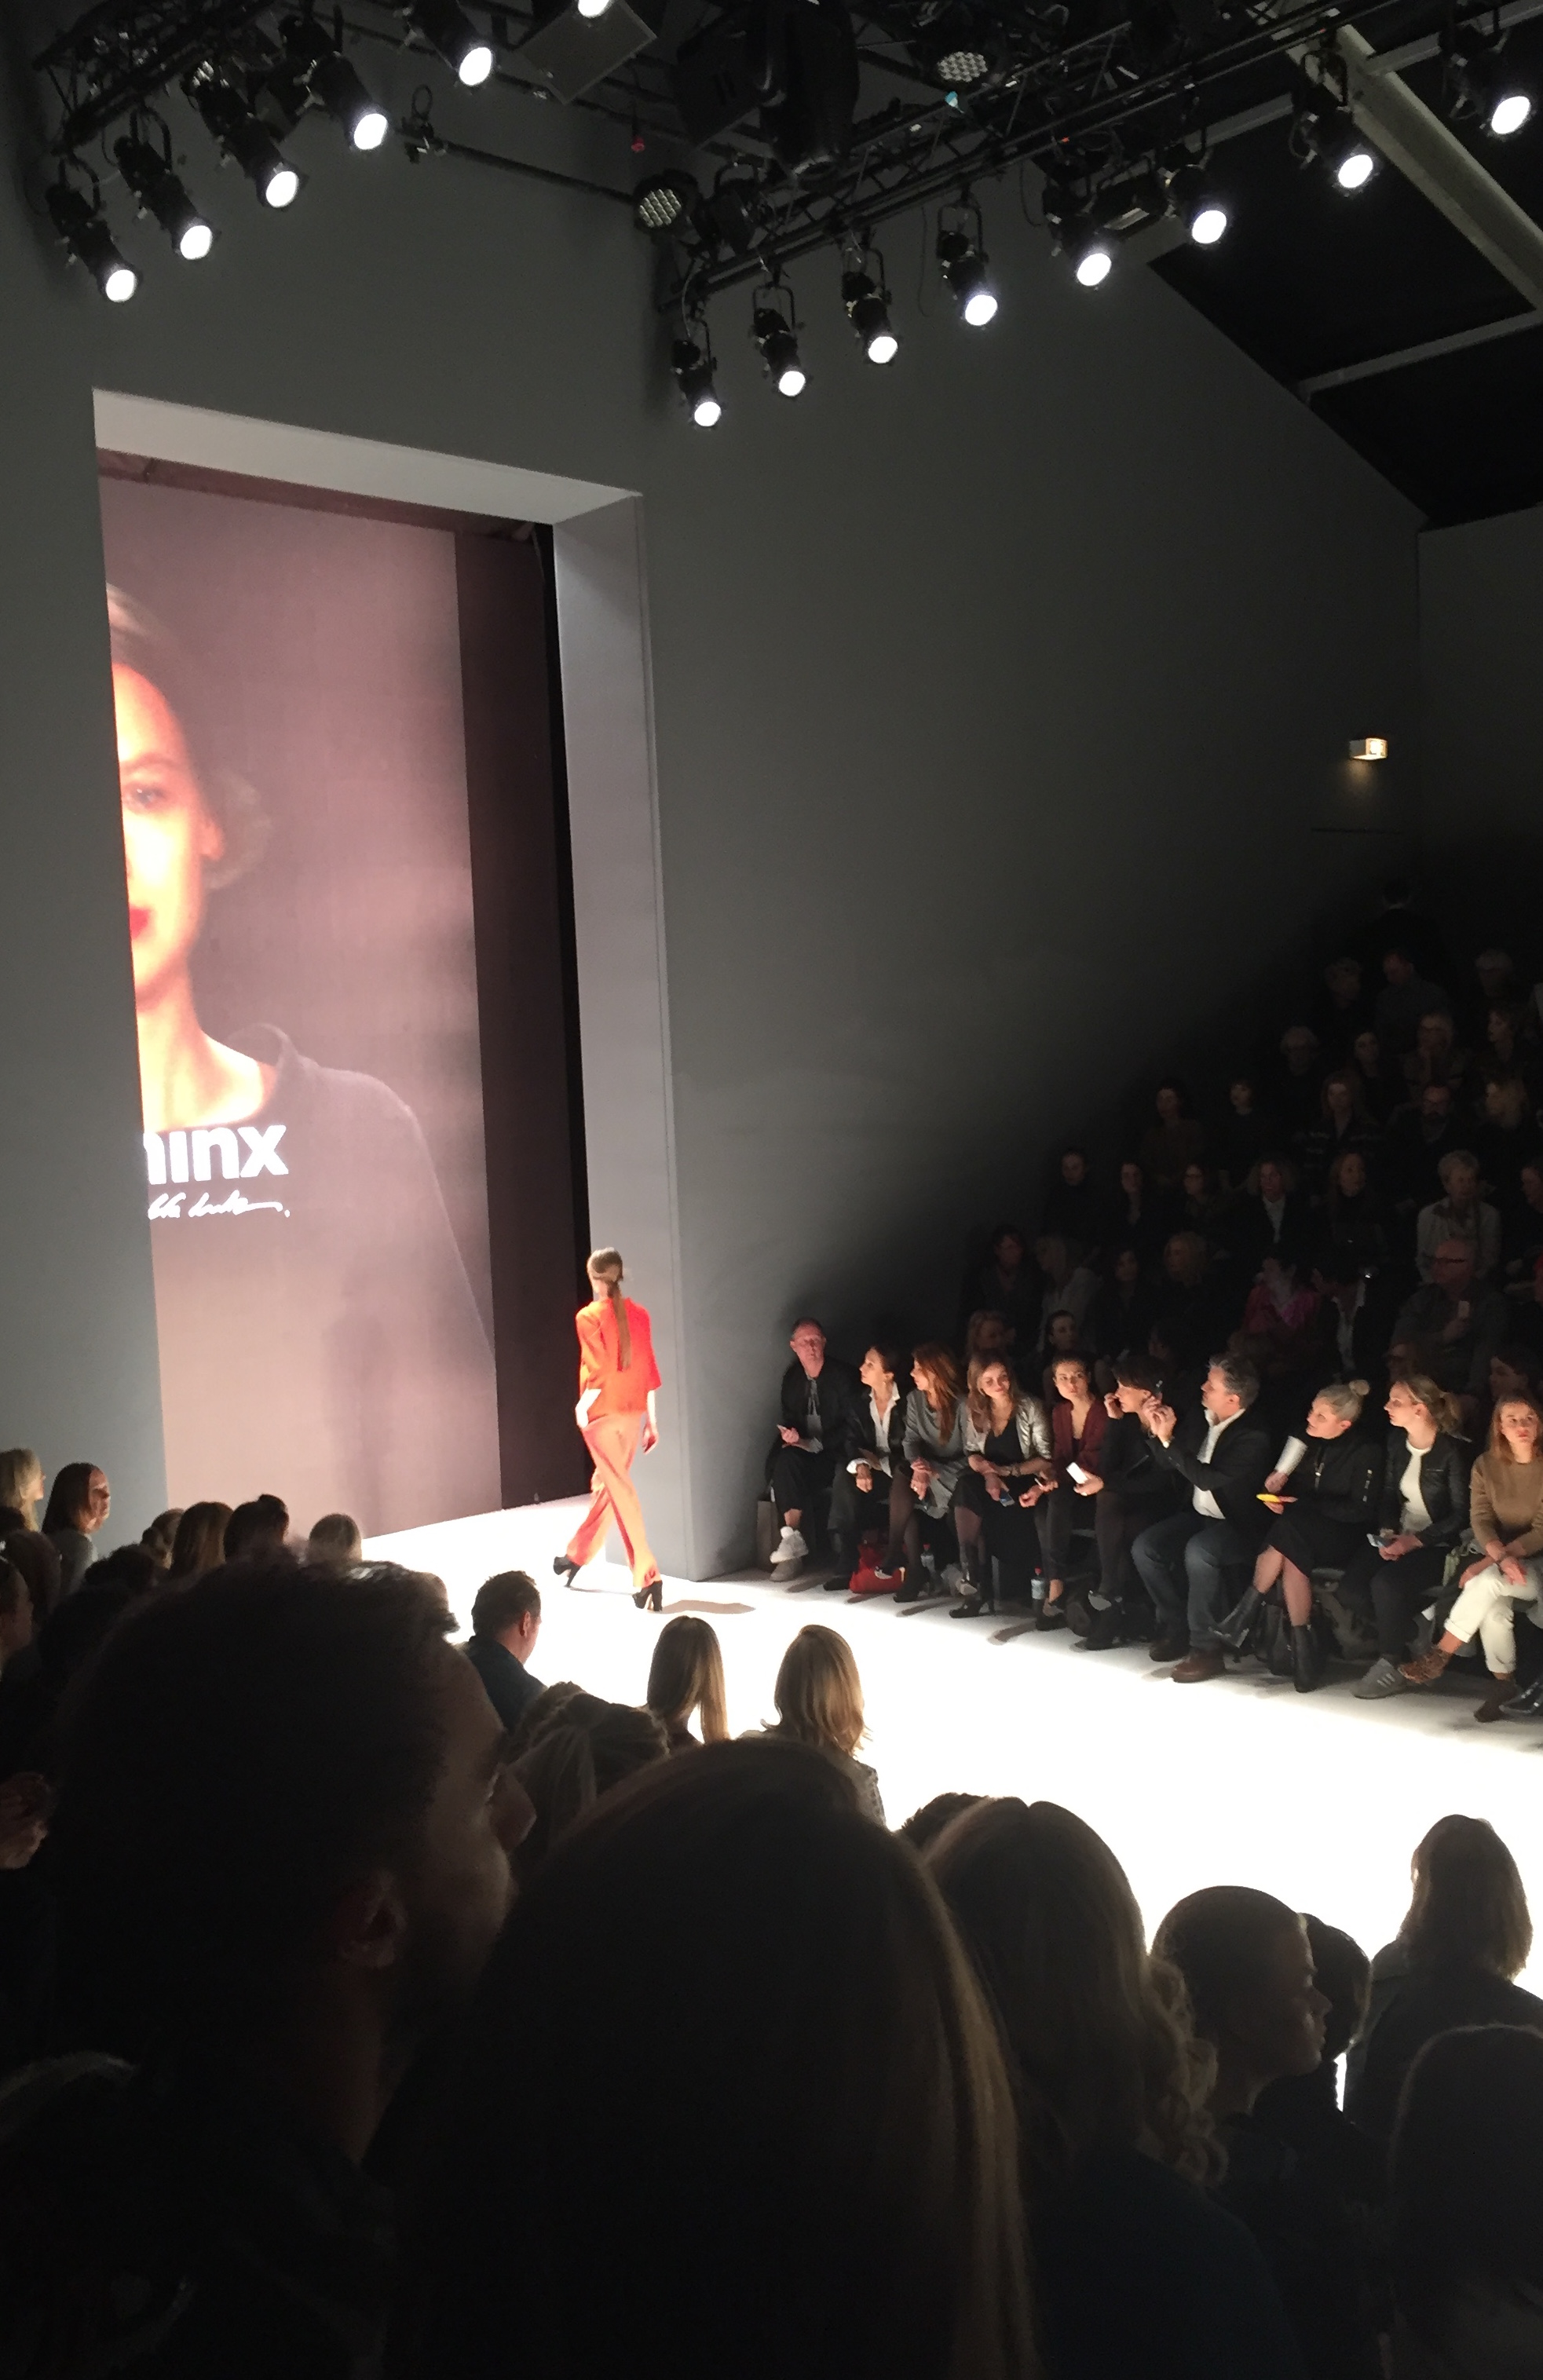 MBFW, Fashion Week, Berlin, Minx, Eva Lutz